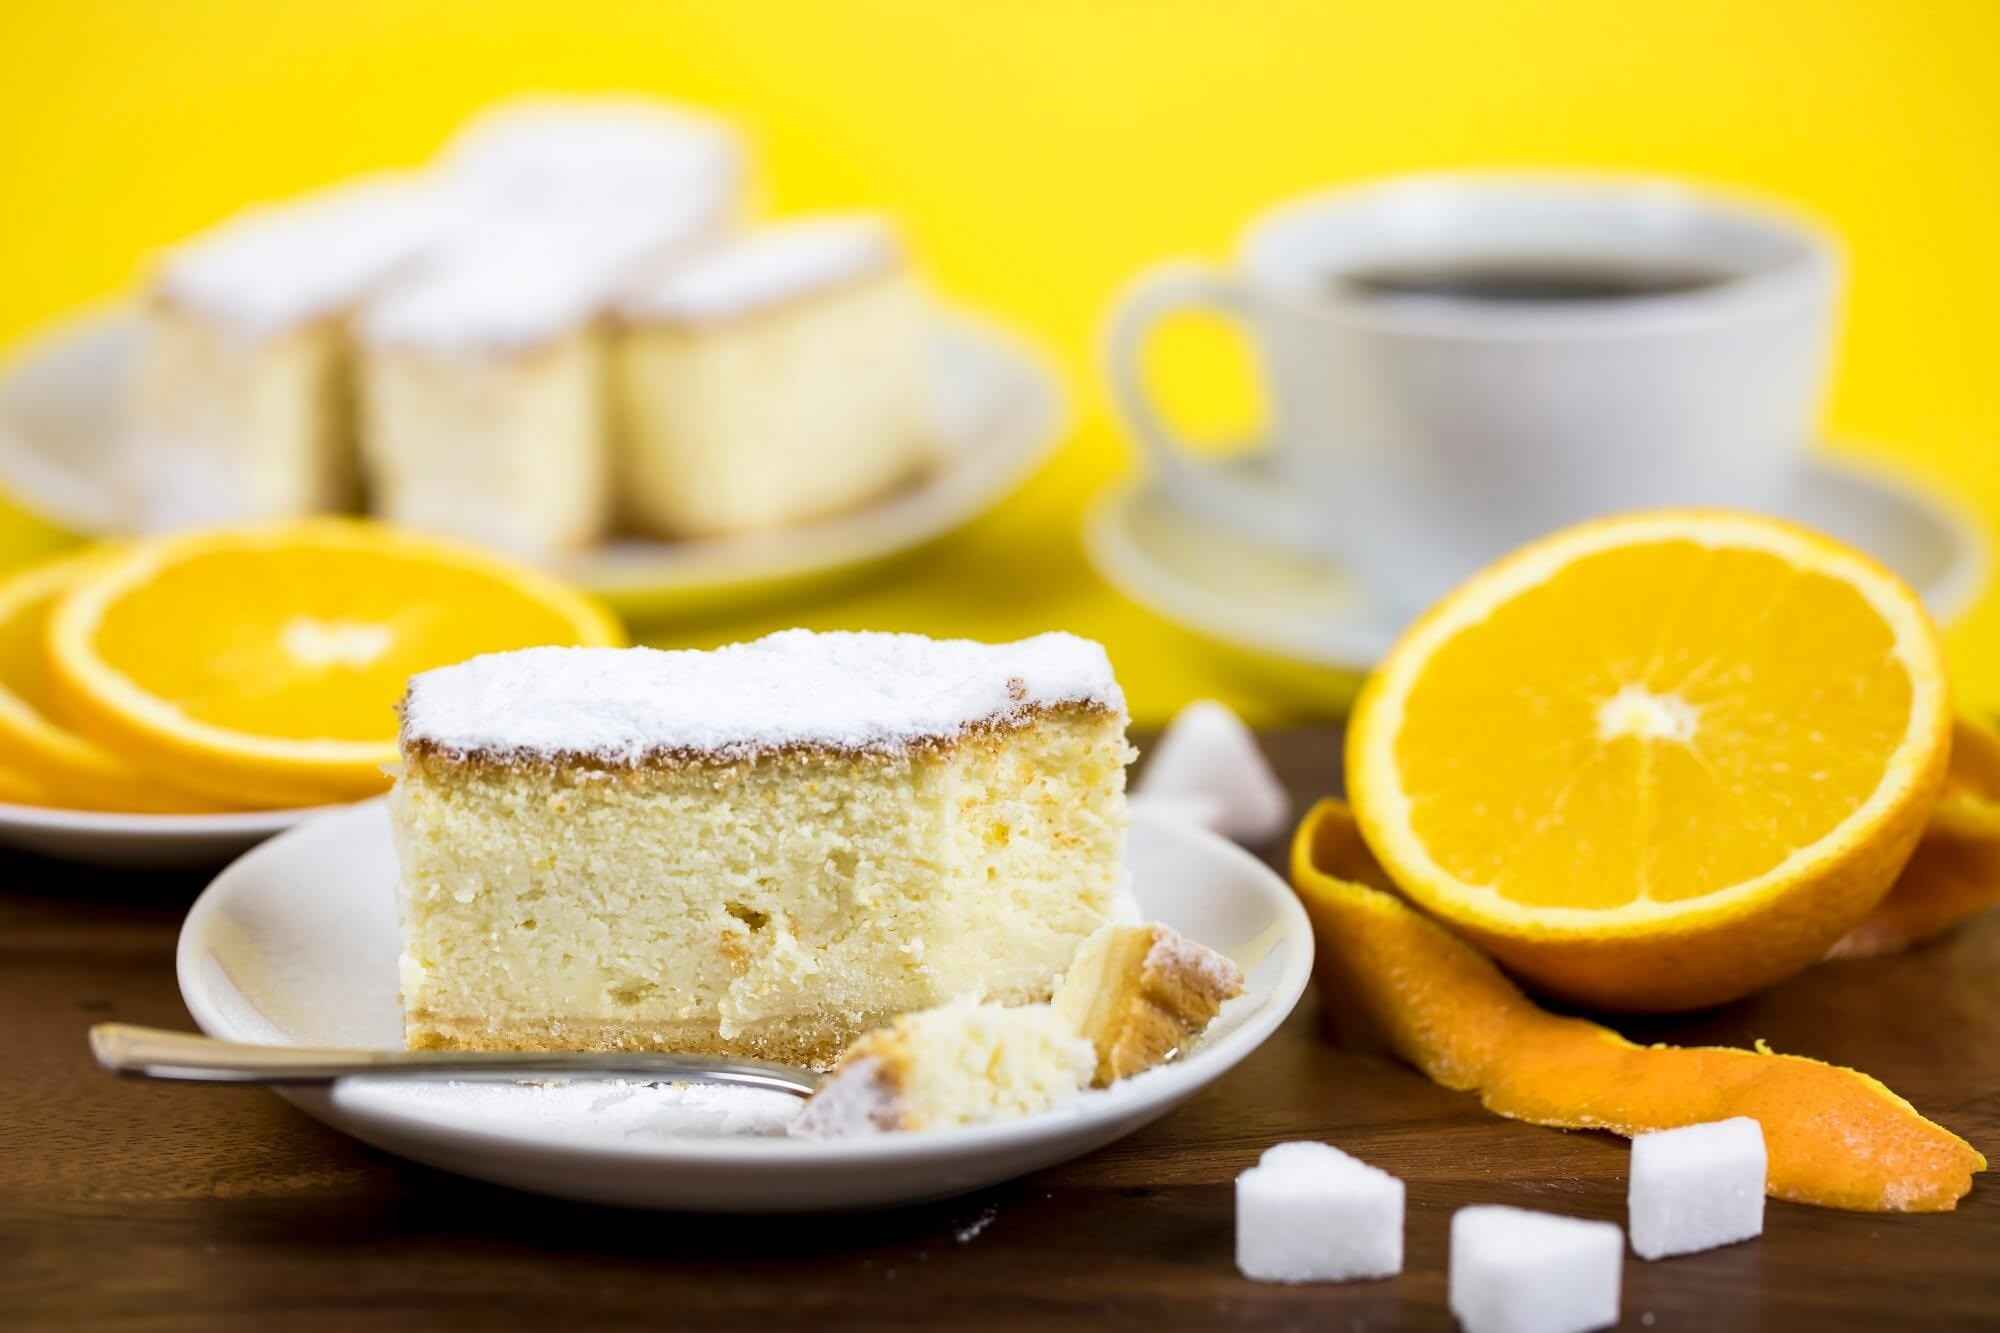 Individuals with depression were significantly associated with a high fat, high sugar diet pattern.